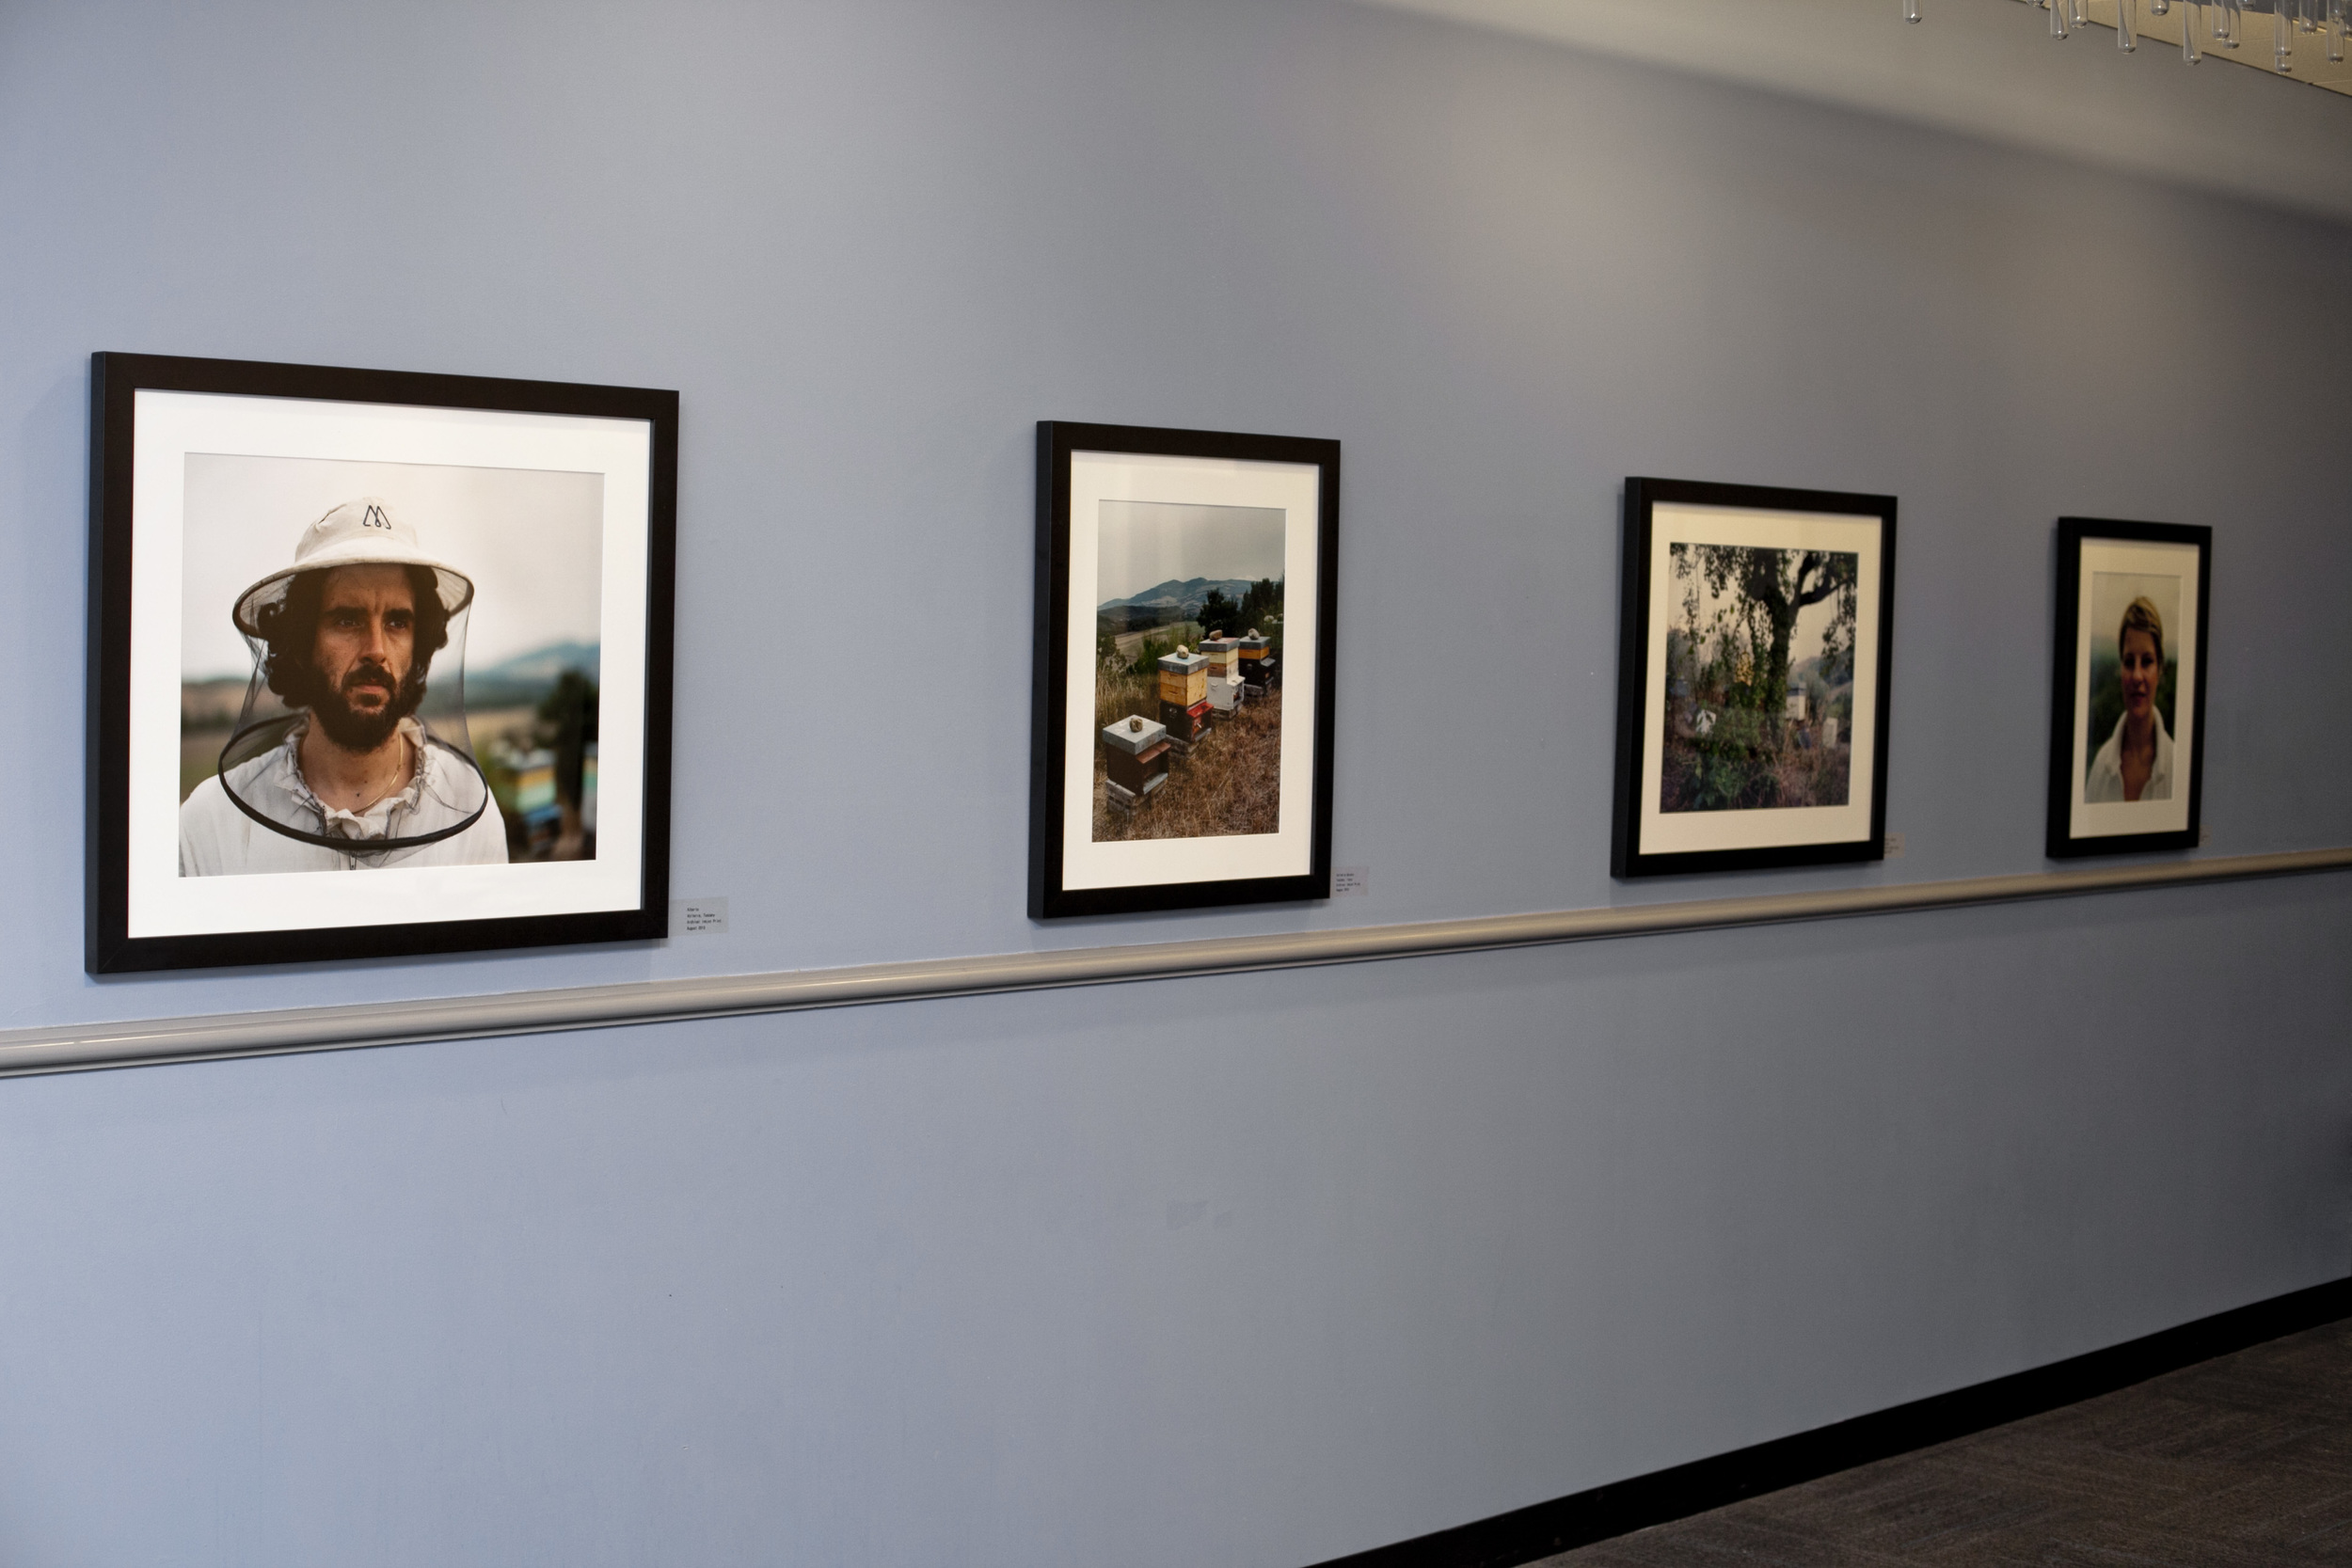 Installation View at the Gallery of the Warner Babcock Institute for Green Chemistry